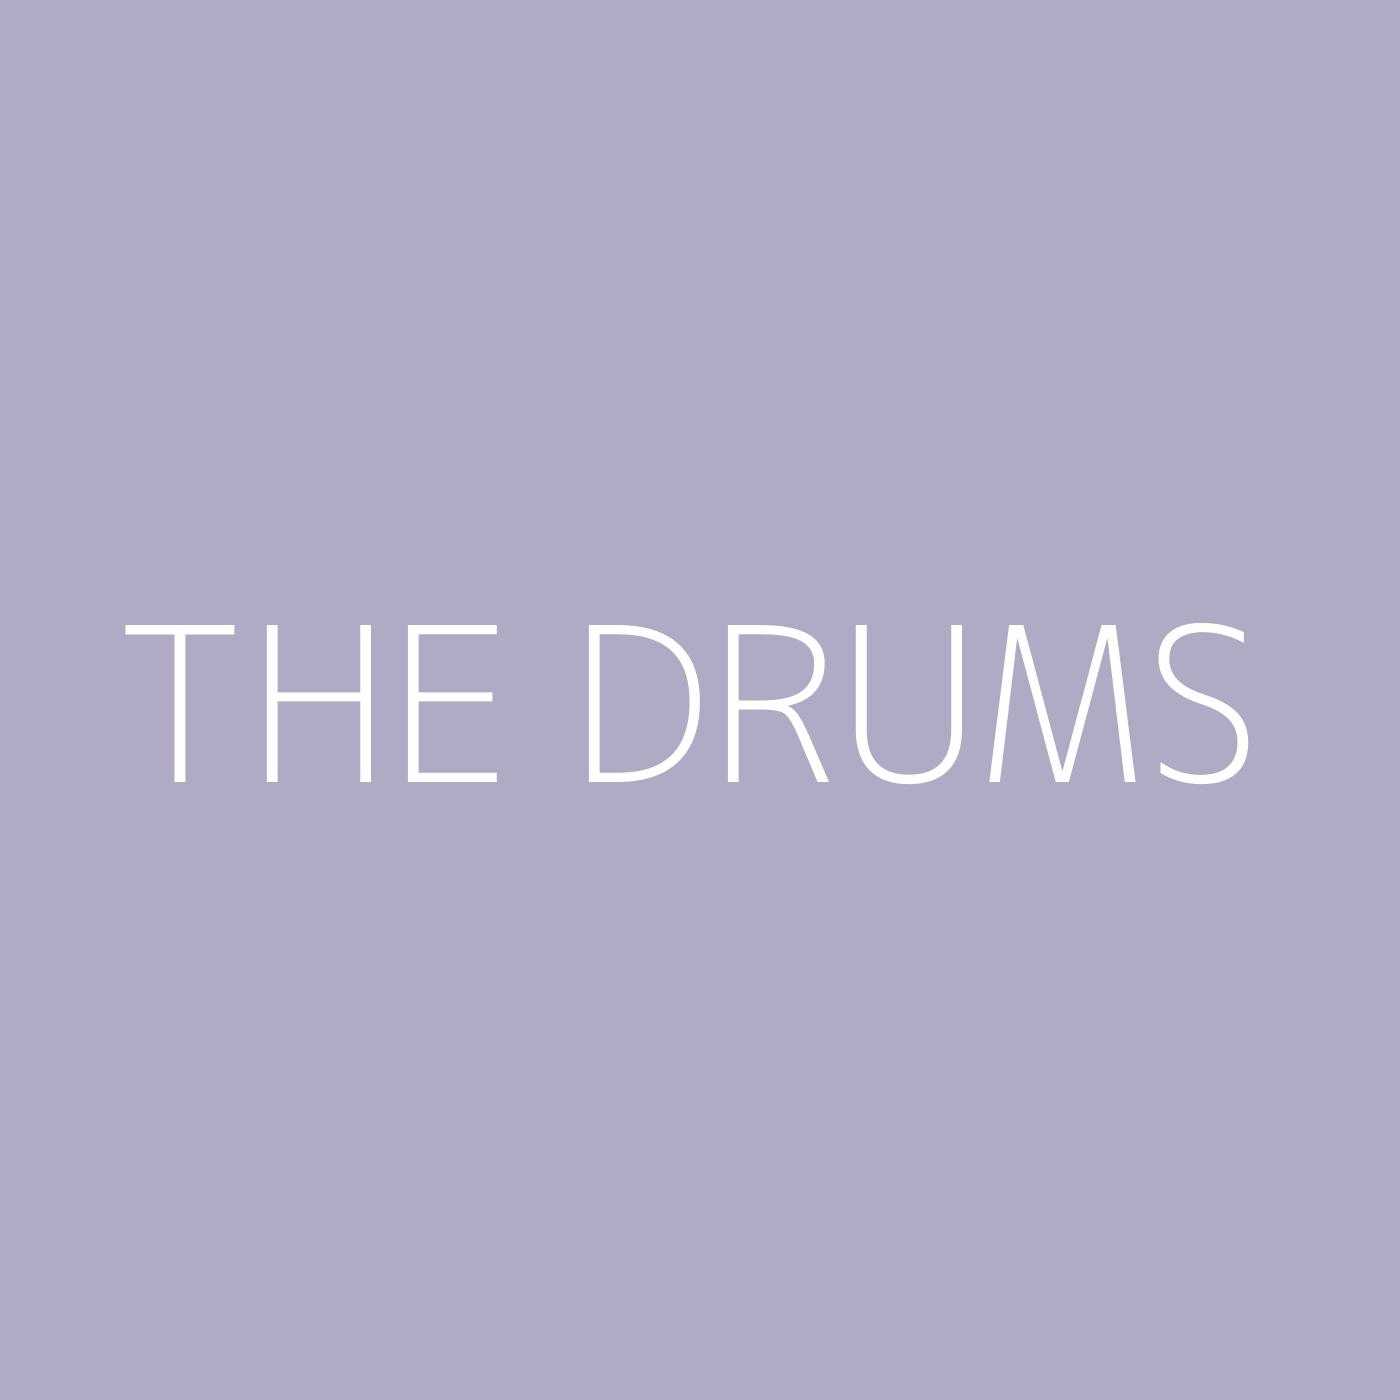 The Drums Playlist Artwork